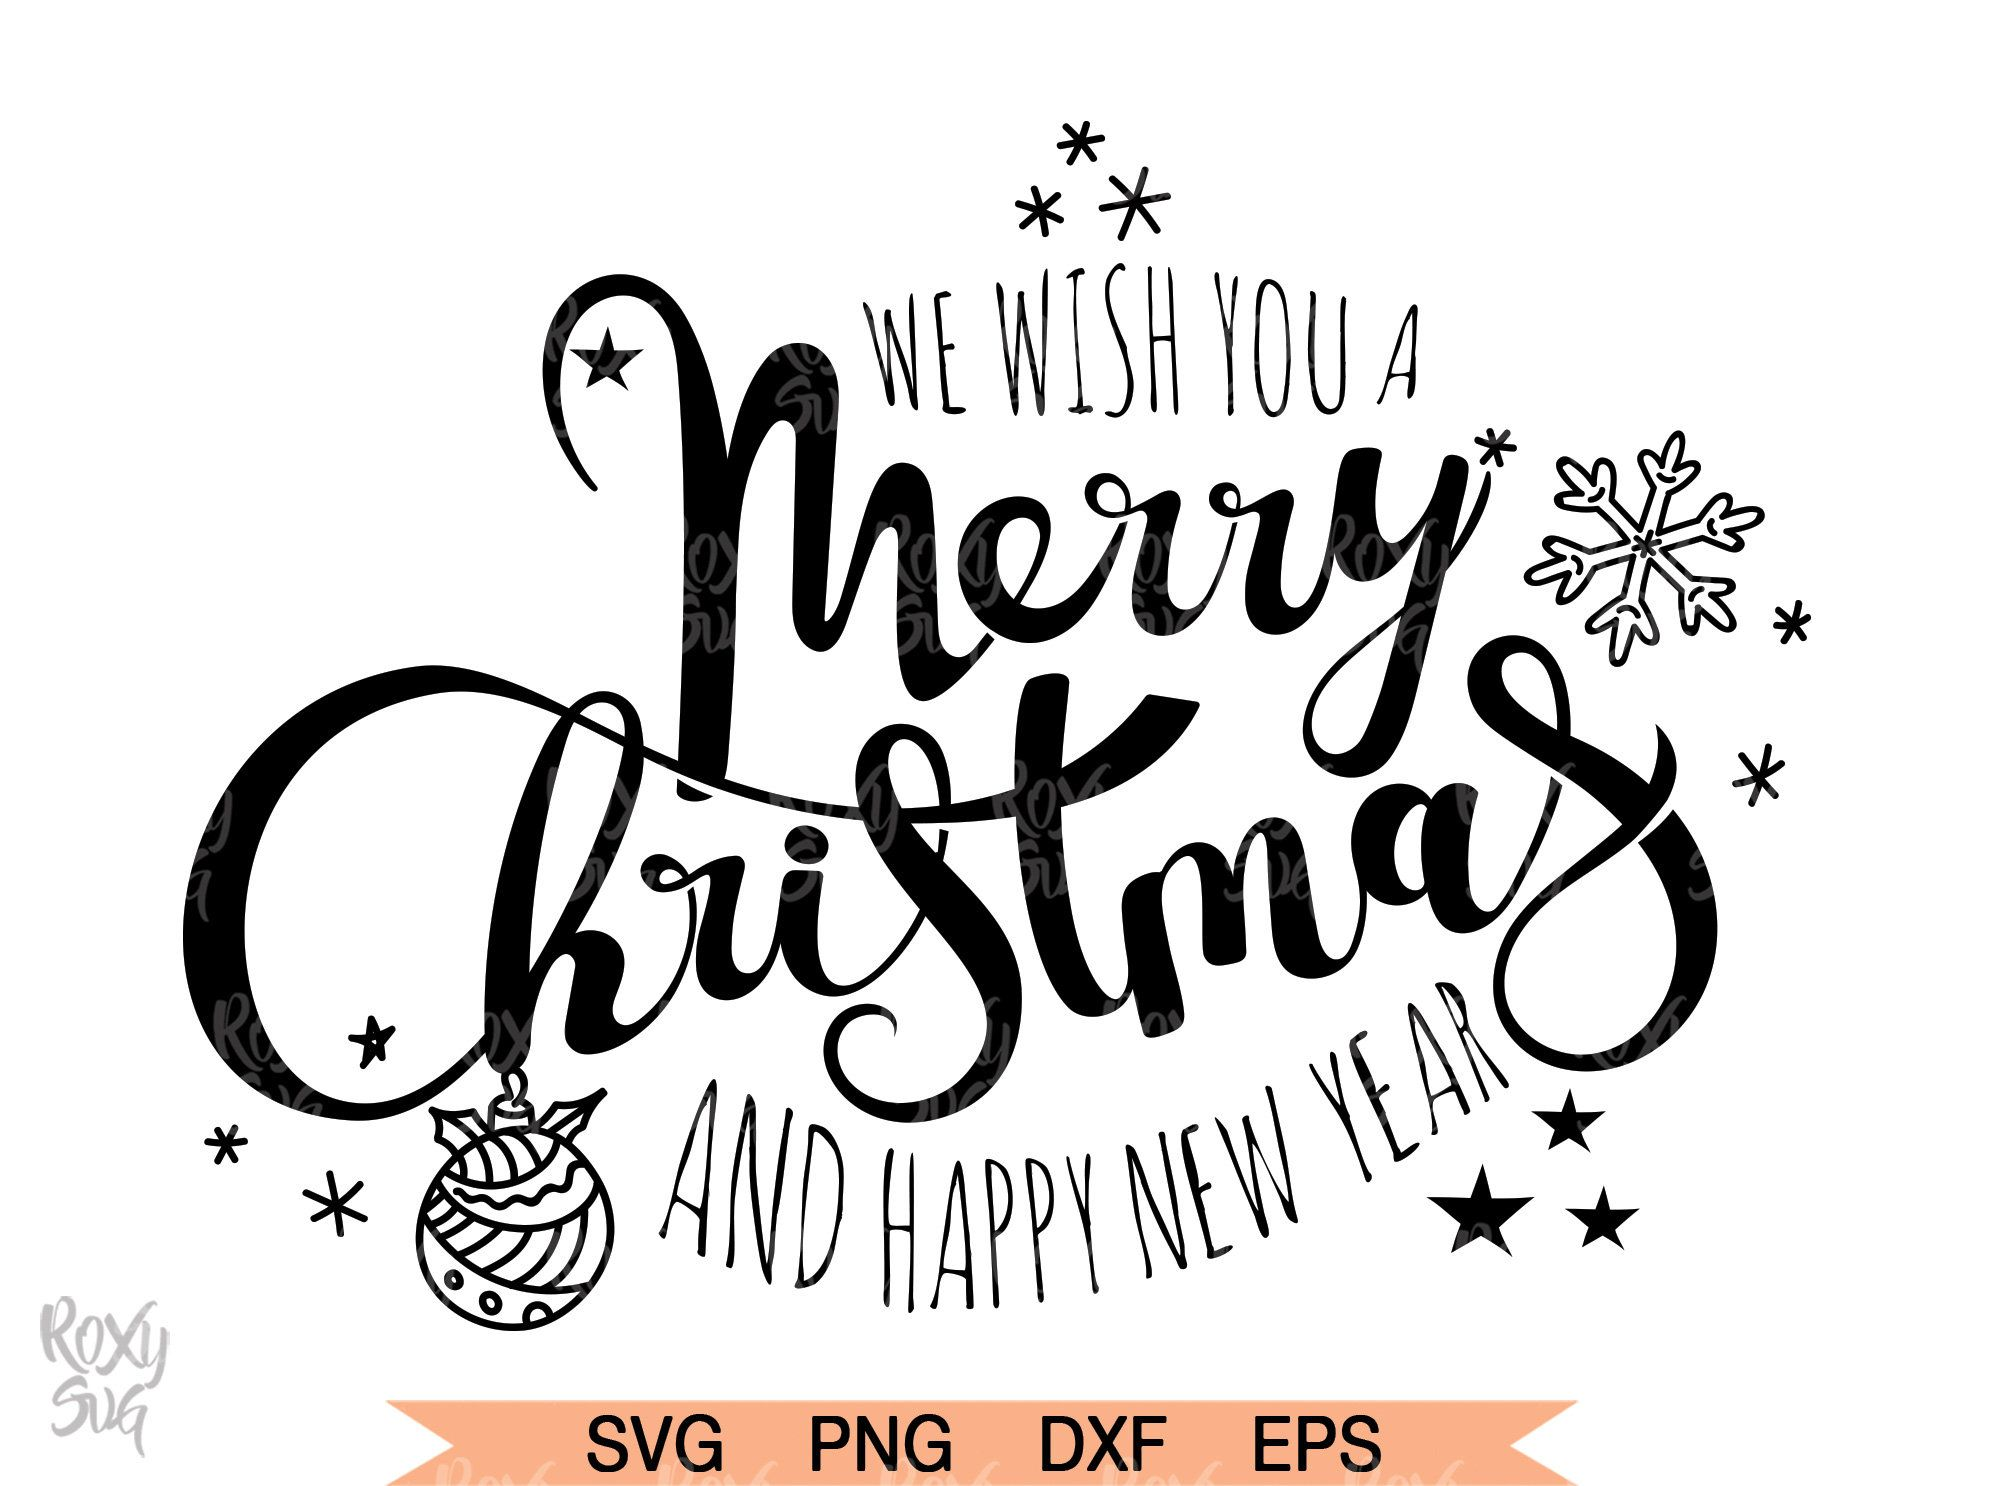 Merry Christmas SVG, Happy new year 2020 SVG, Christmas